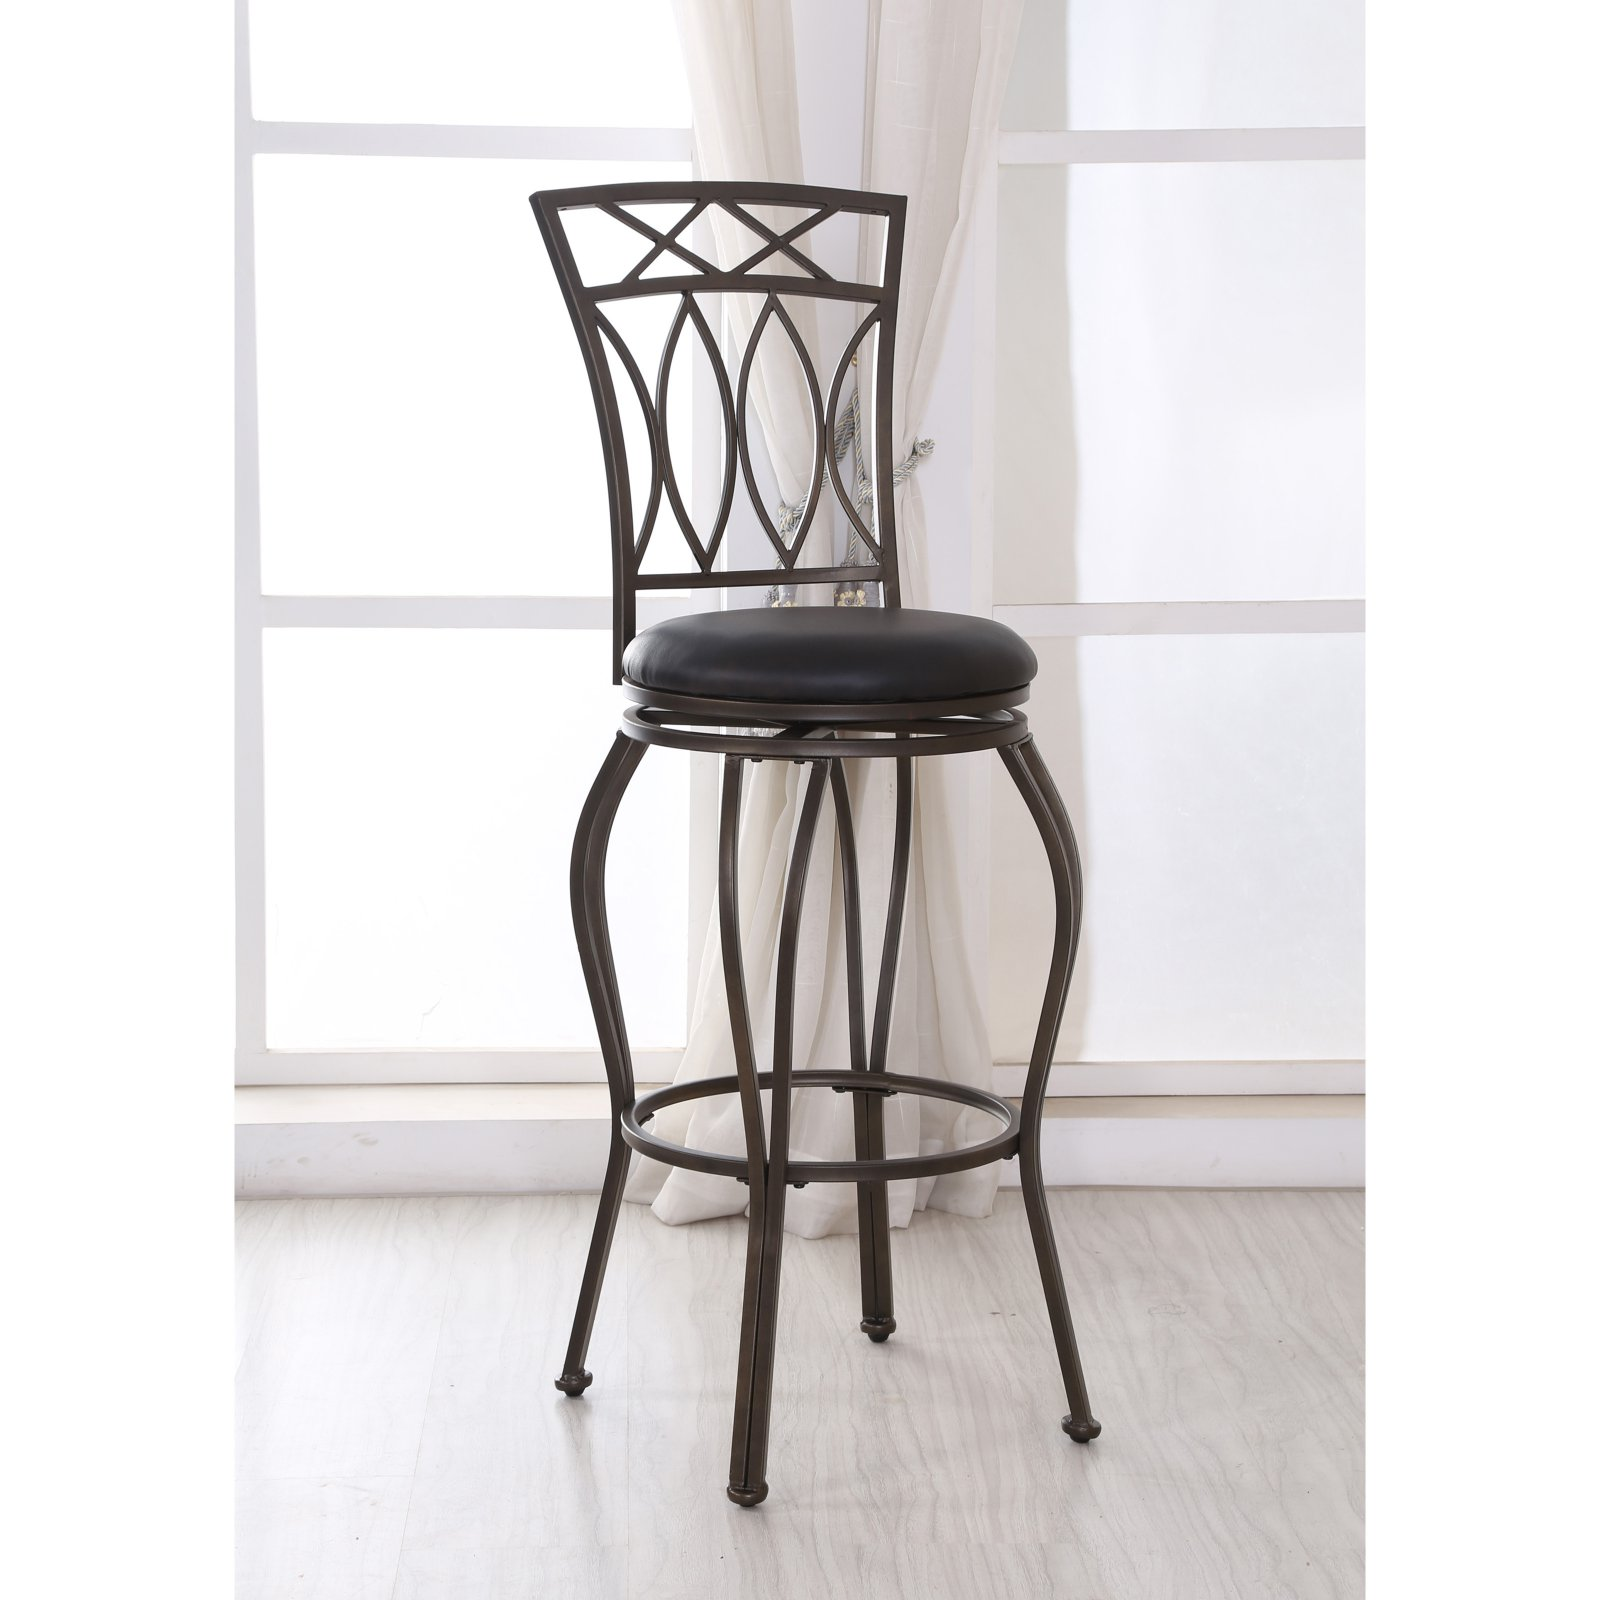 Hodedah Imports 31 in. Bar Stool